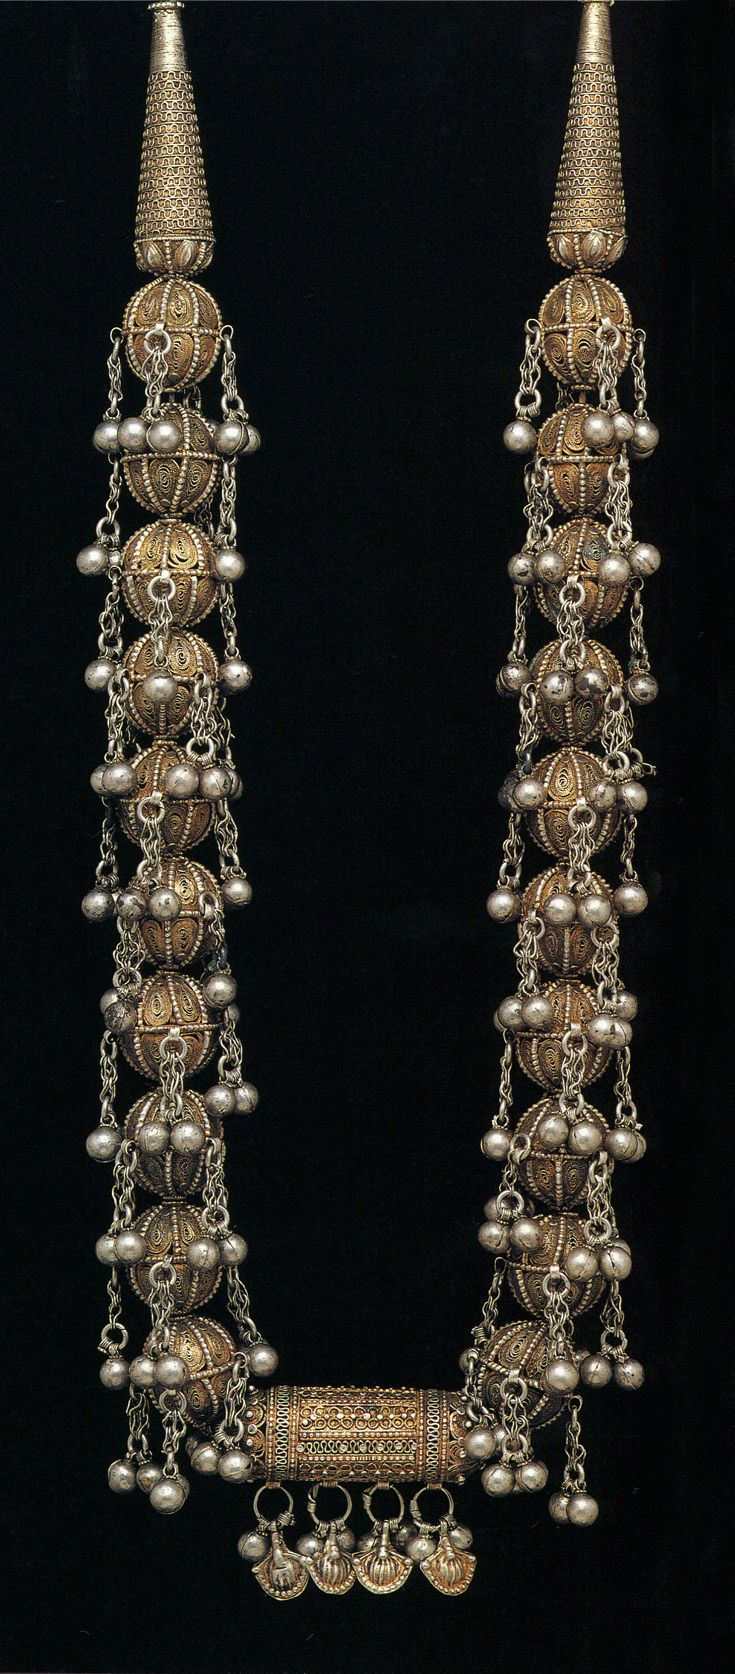 Yemen | Bridal necklace; gilded silver | ©The Splendour of Ethnic Jewelry: From the Colette and Jean-Pierre Ghysels Collection.  Text:  France Borel.  Photographs:  John Bigelow Taylor.  Thames and Hudson, 1994.  Page 112